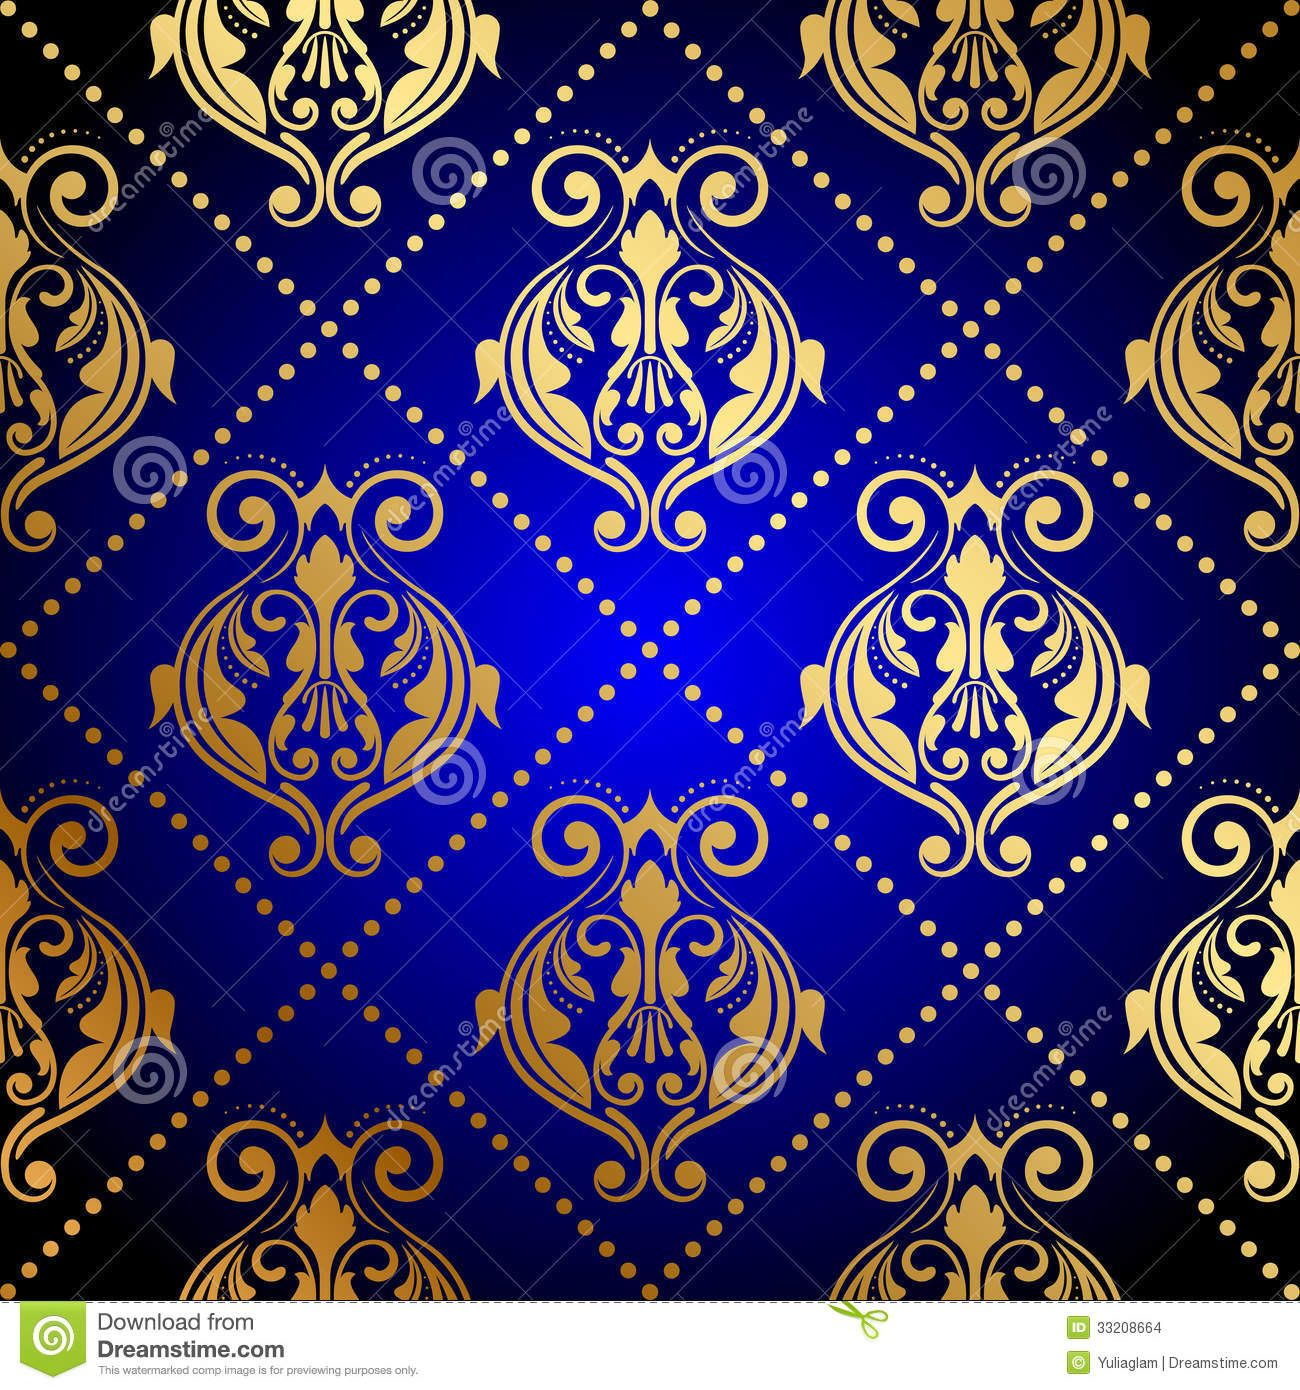 Royal Blue And Gold Wallpaper In 2020 Blue And Gold Wallpaper Royal Blue And Gold Blue Background Patterns